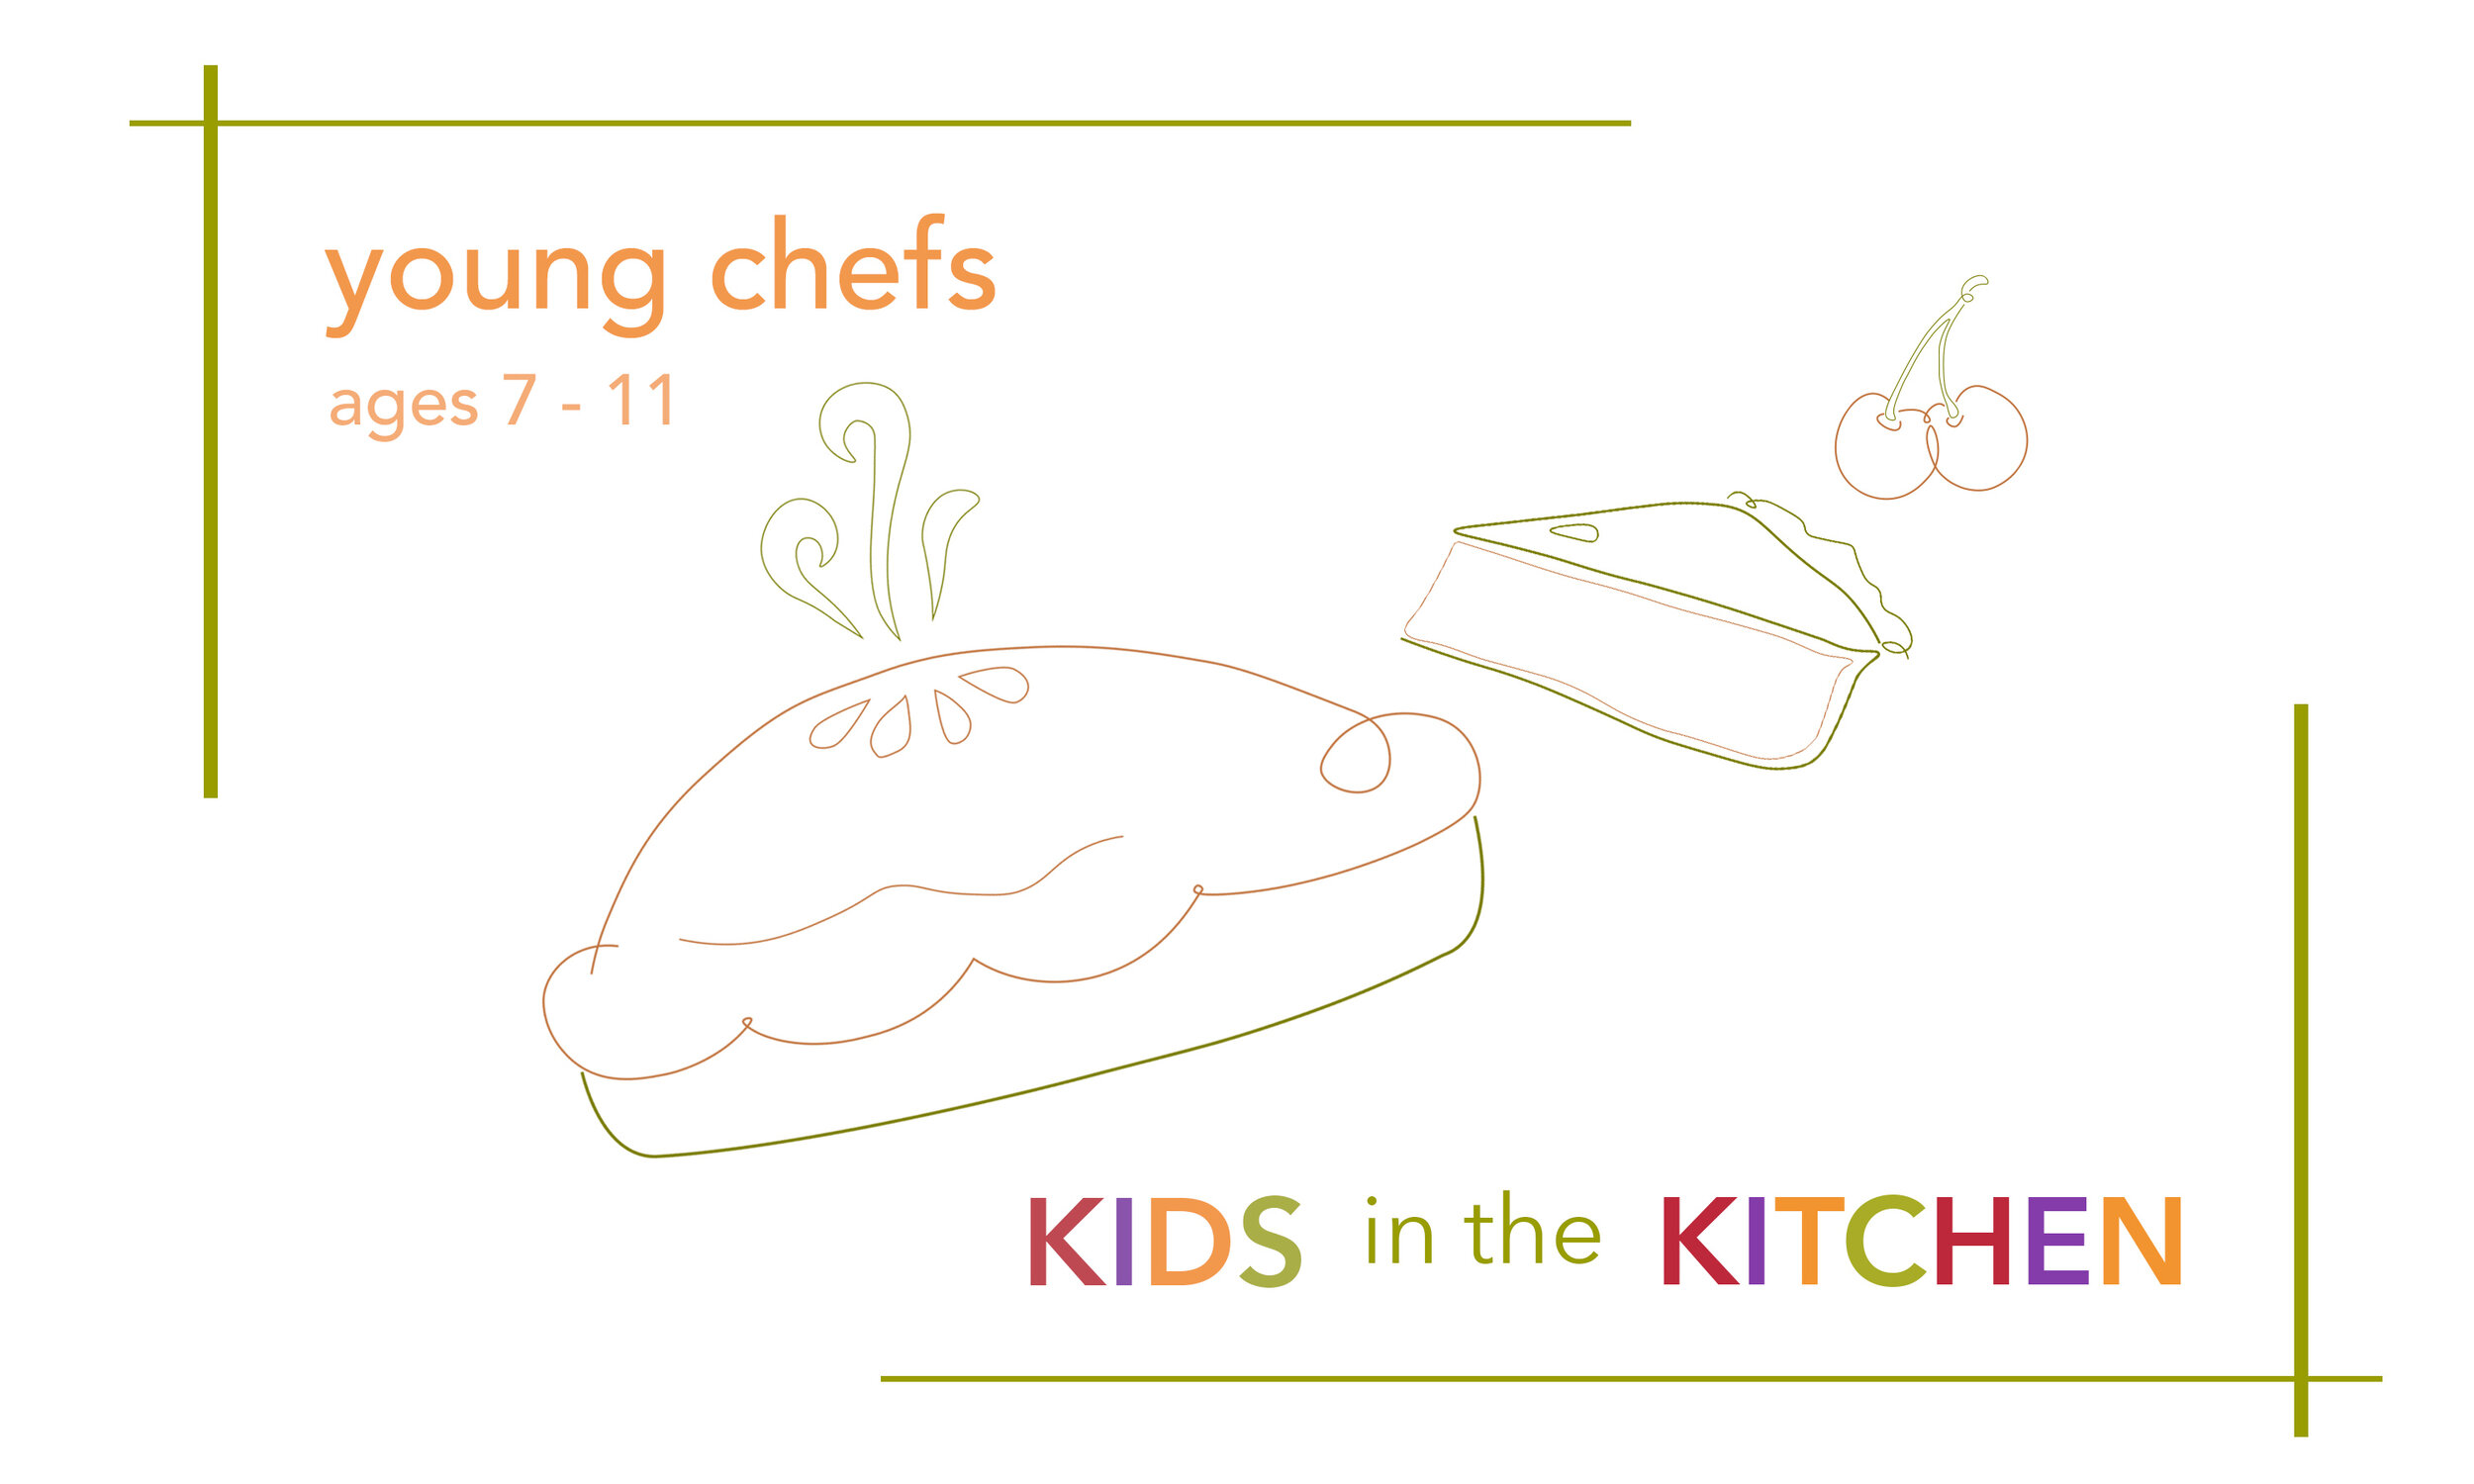 kids in the kitchen (young chefs).jpg